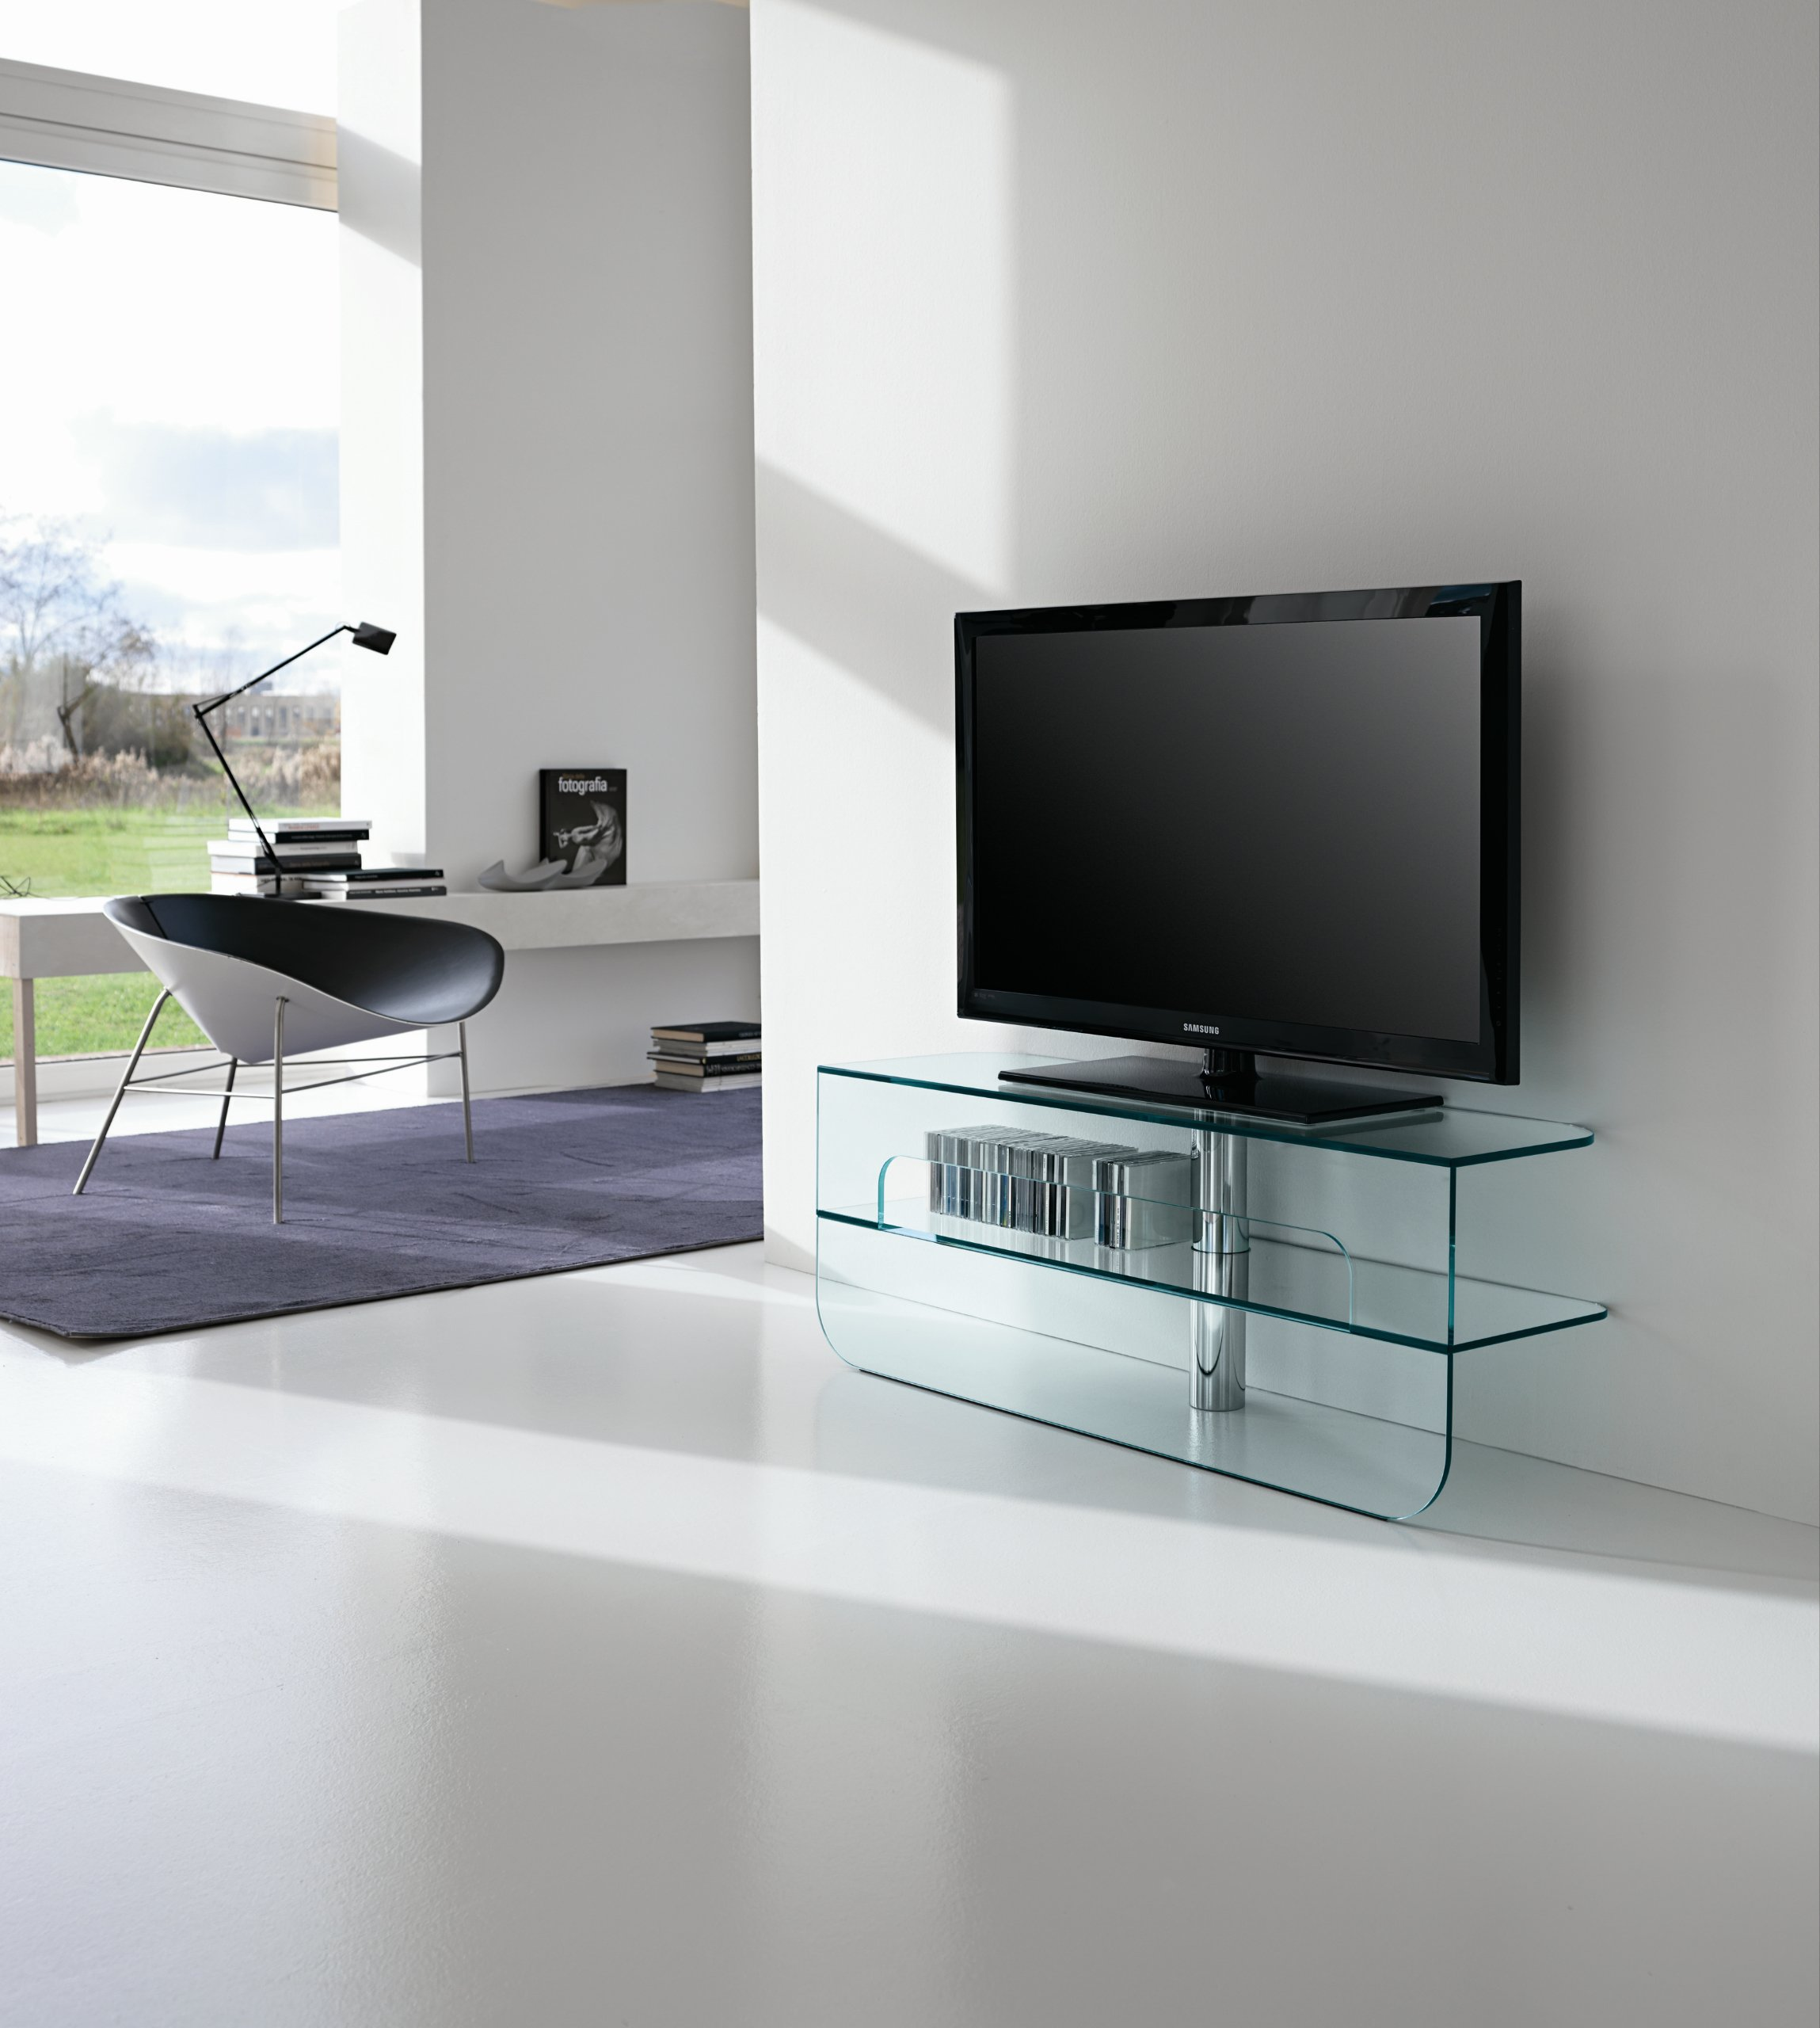 Meuble tv bas en verre plasmatik by t d tonelli design for Meuble de tv en verre